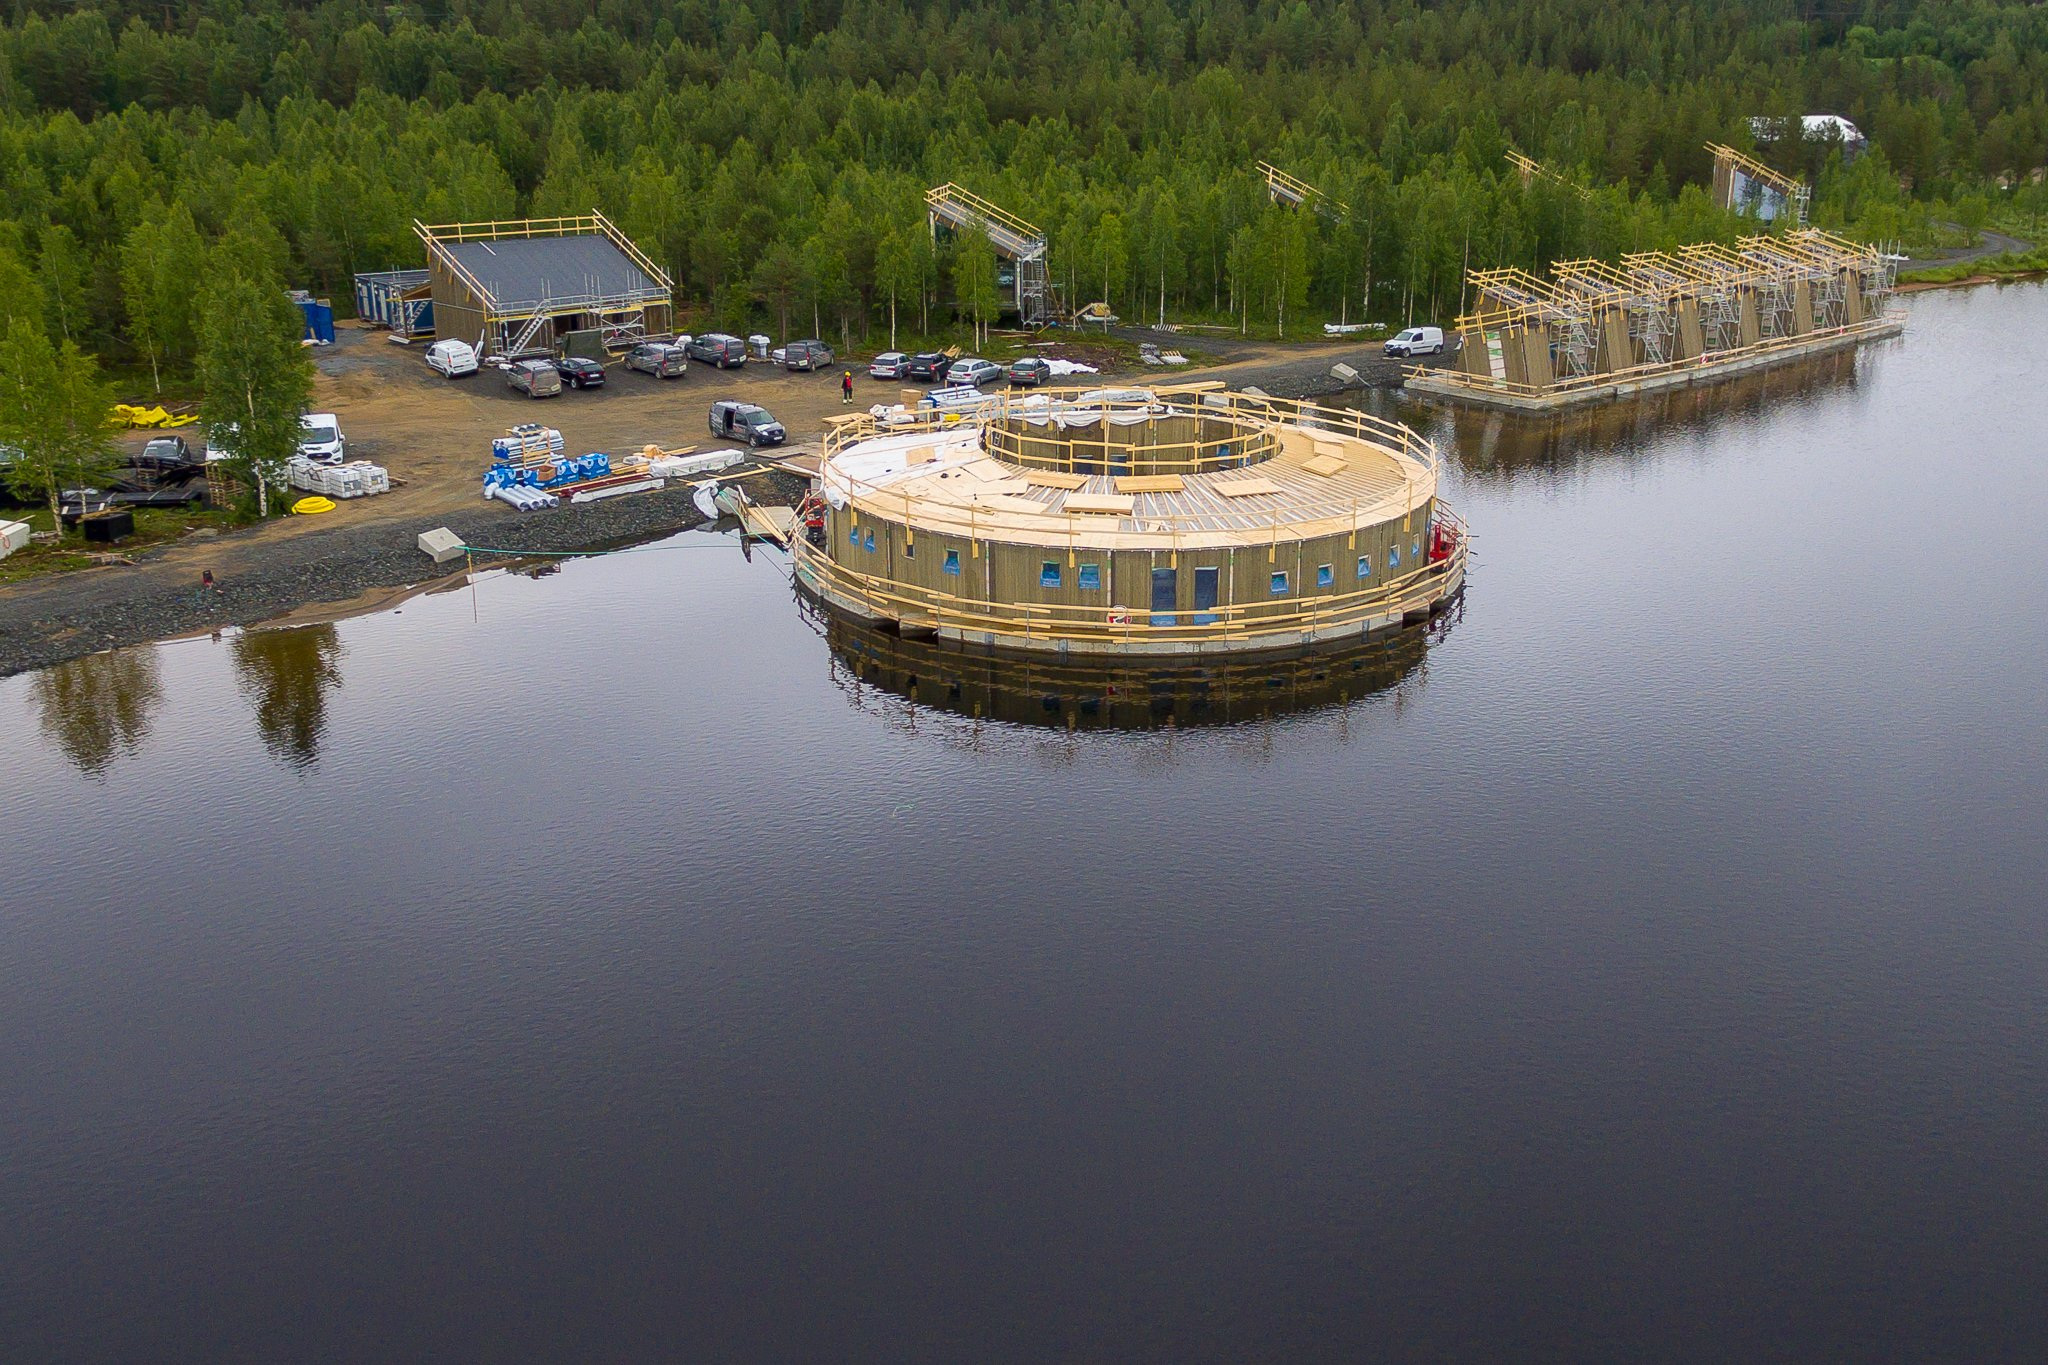 The Arctic Bath Hotel and Spa is under construction and slated to open in February 2020.